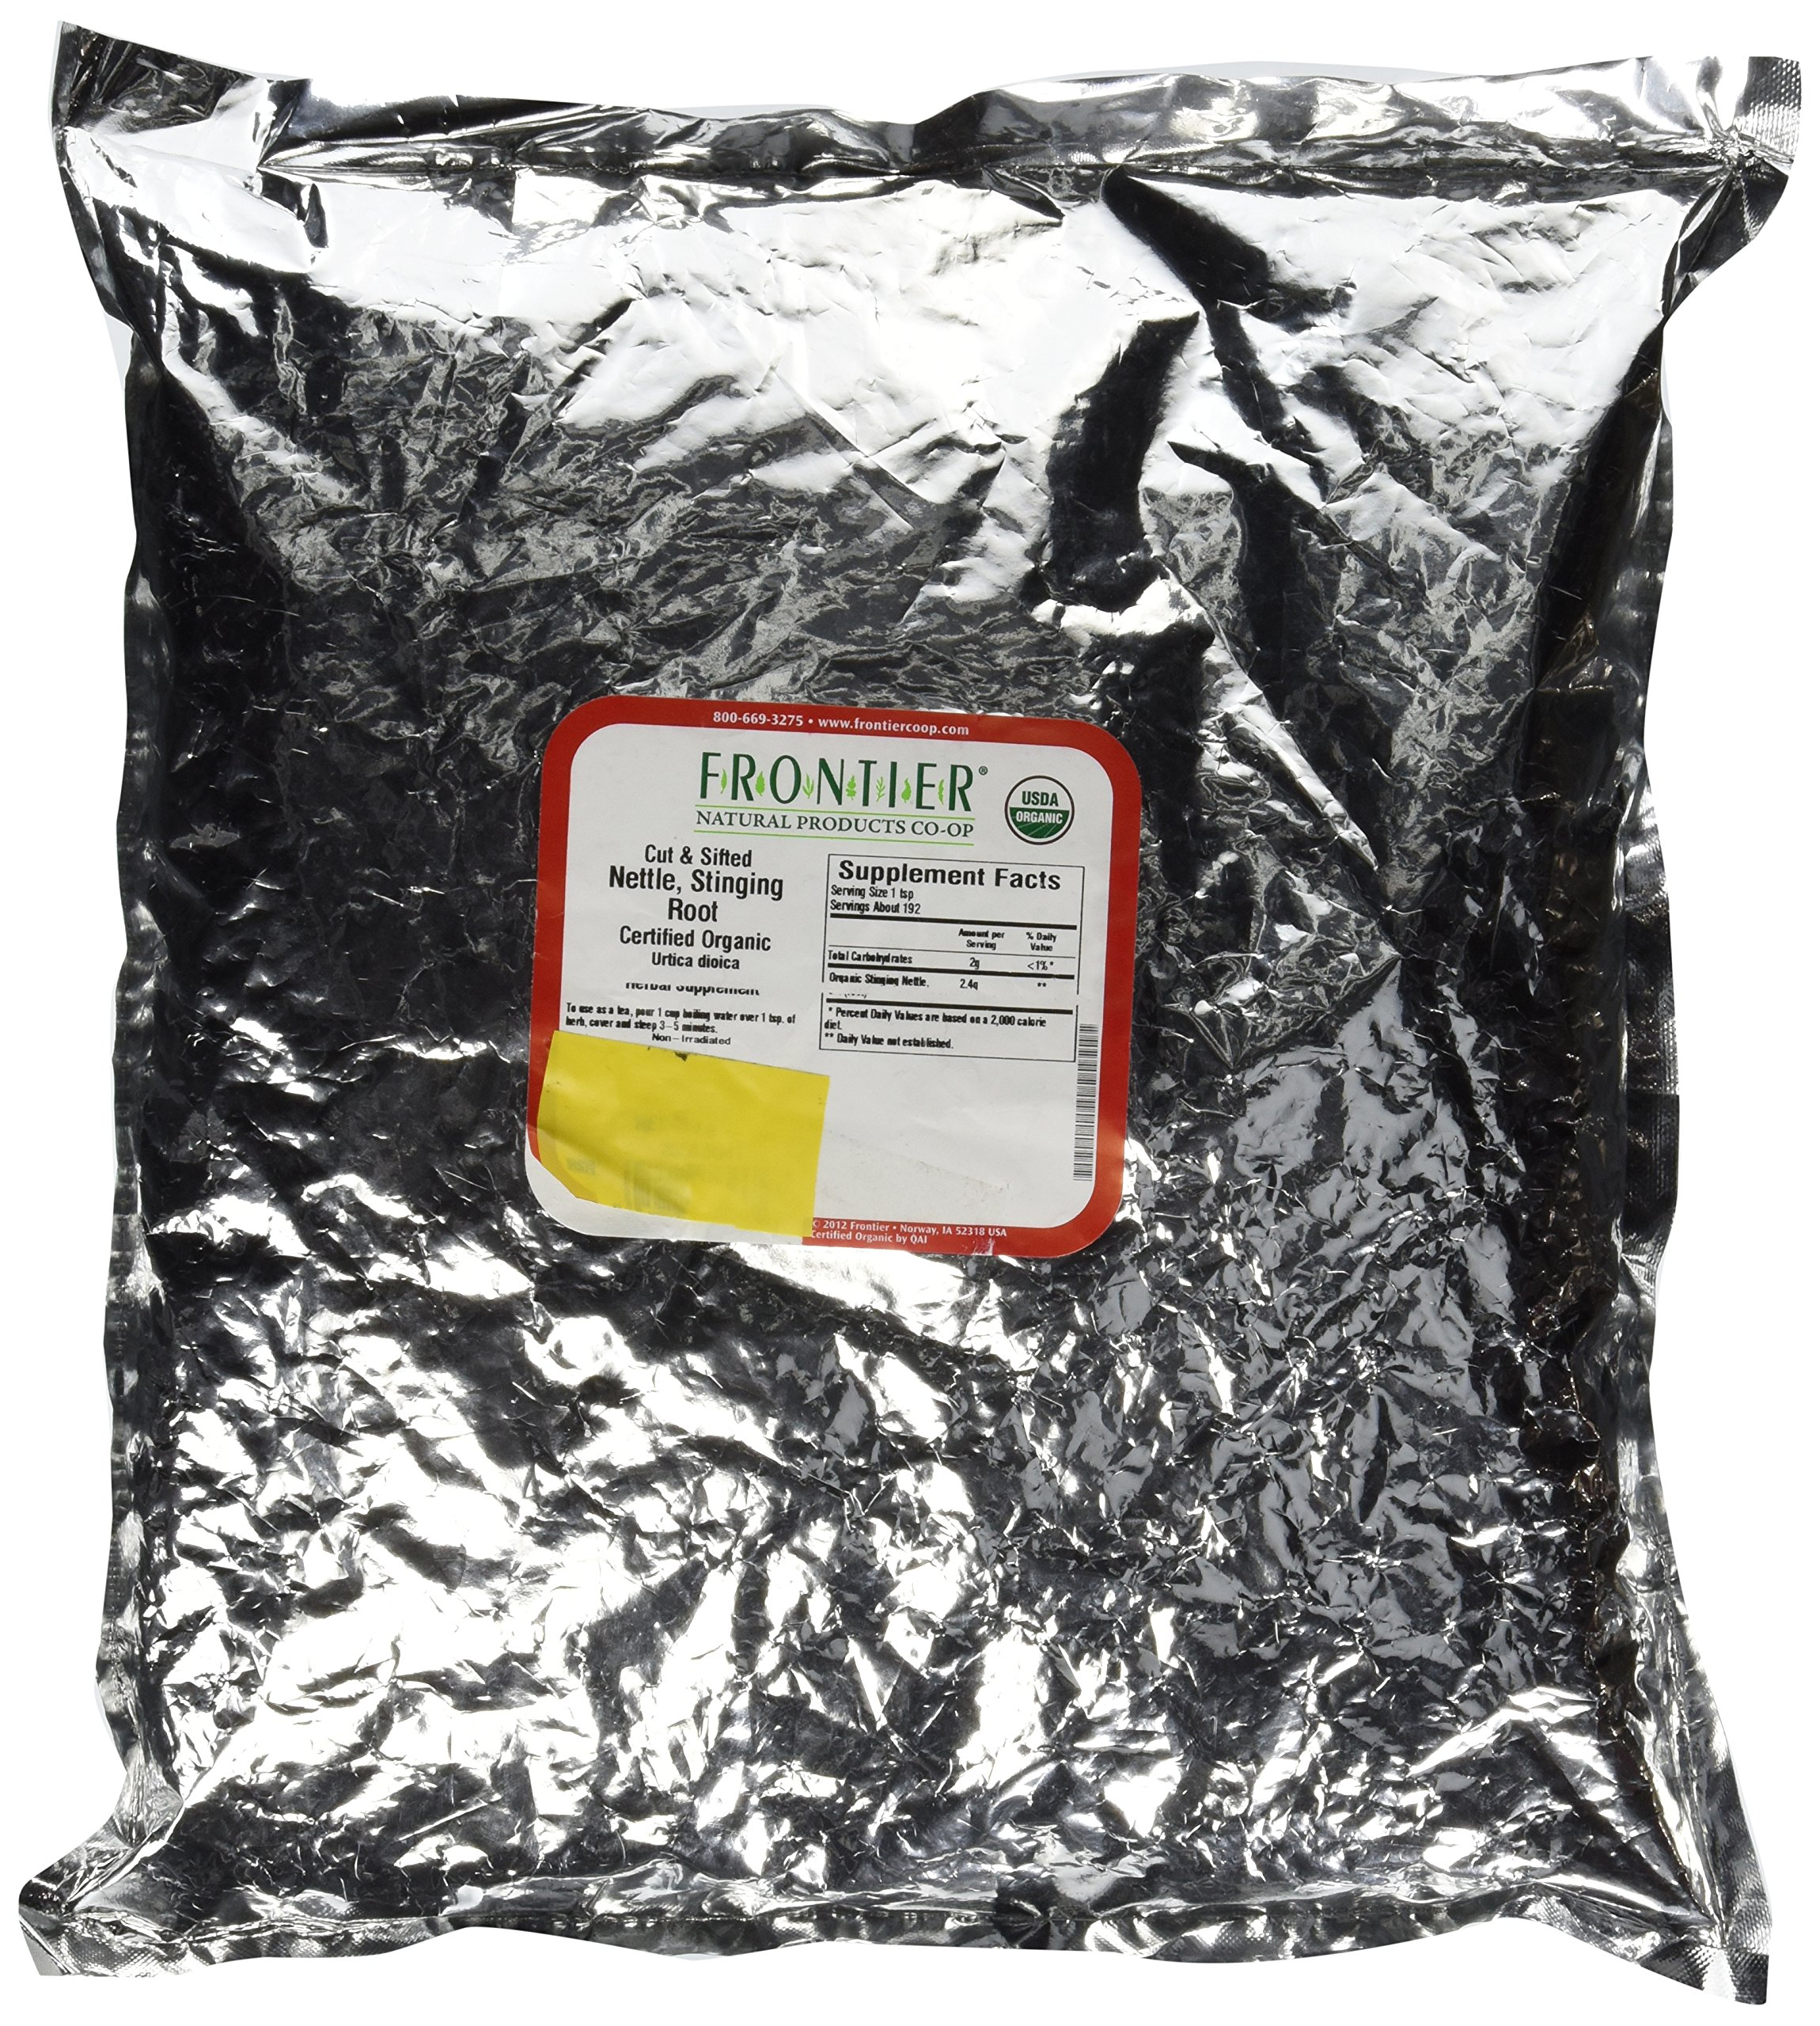 Bulk Nettle Root, Cut & Sifted, Certified Organic Frontier Natural Products 1 lbs Bulk by Frontier